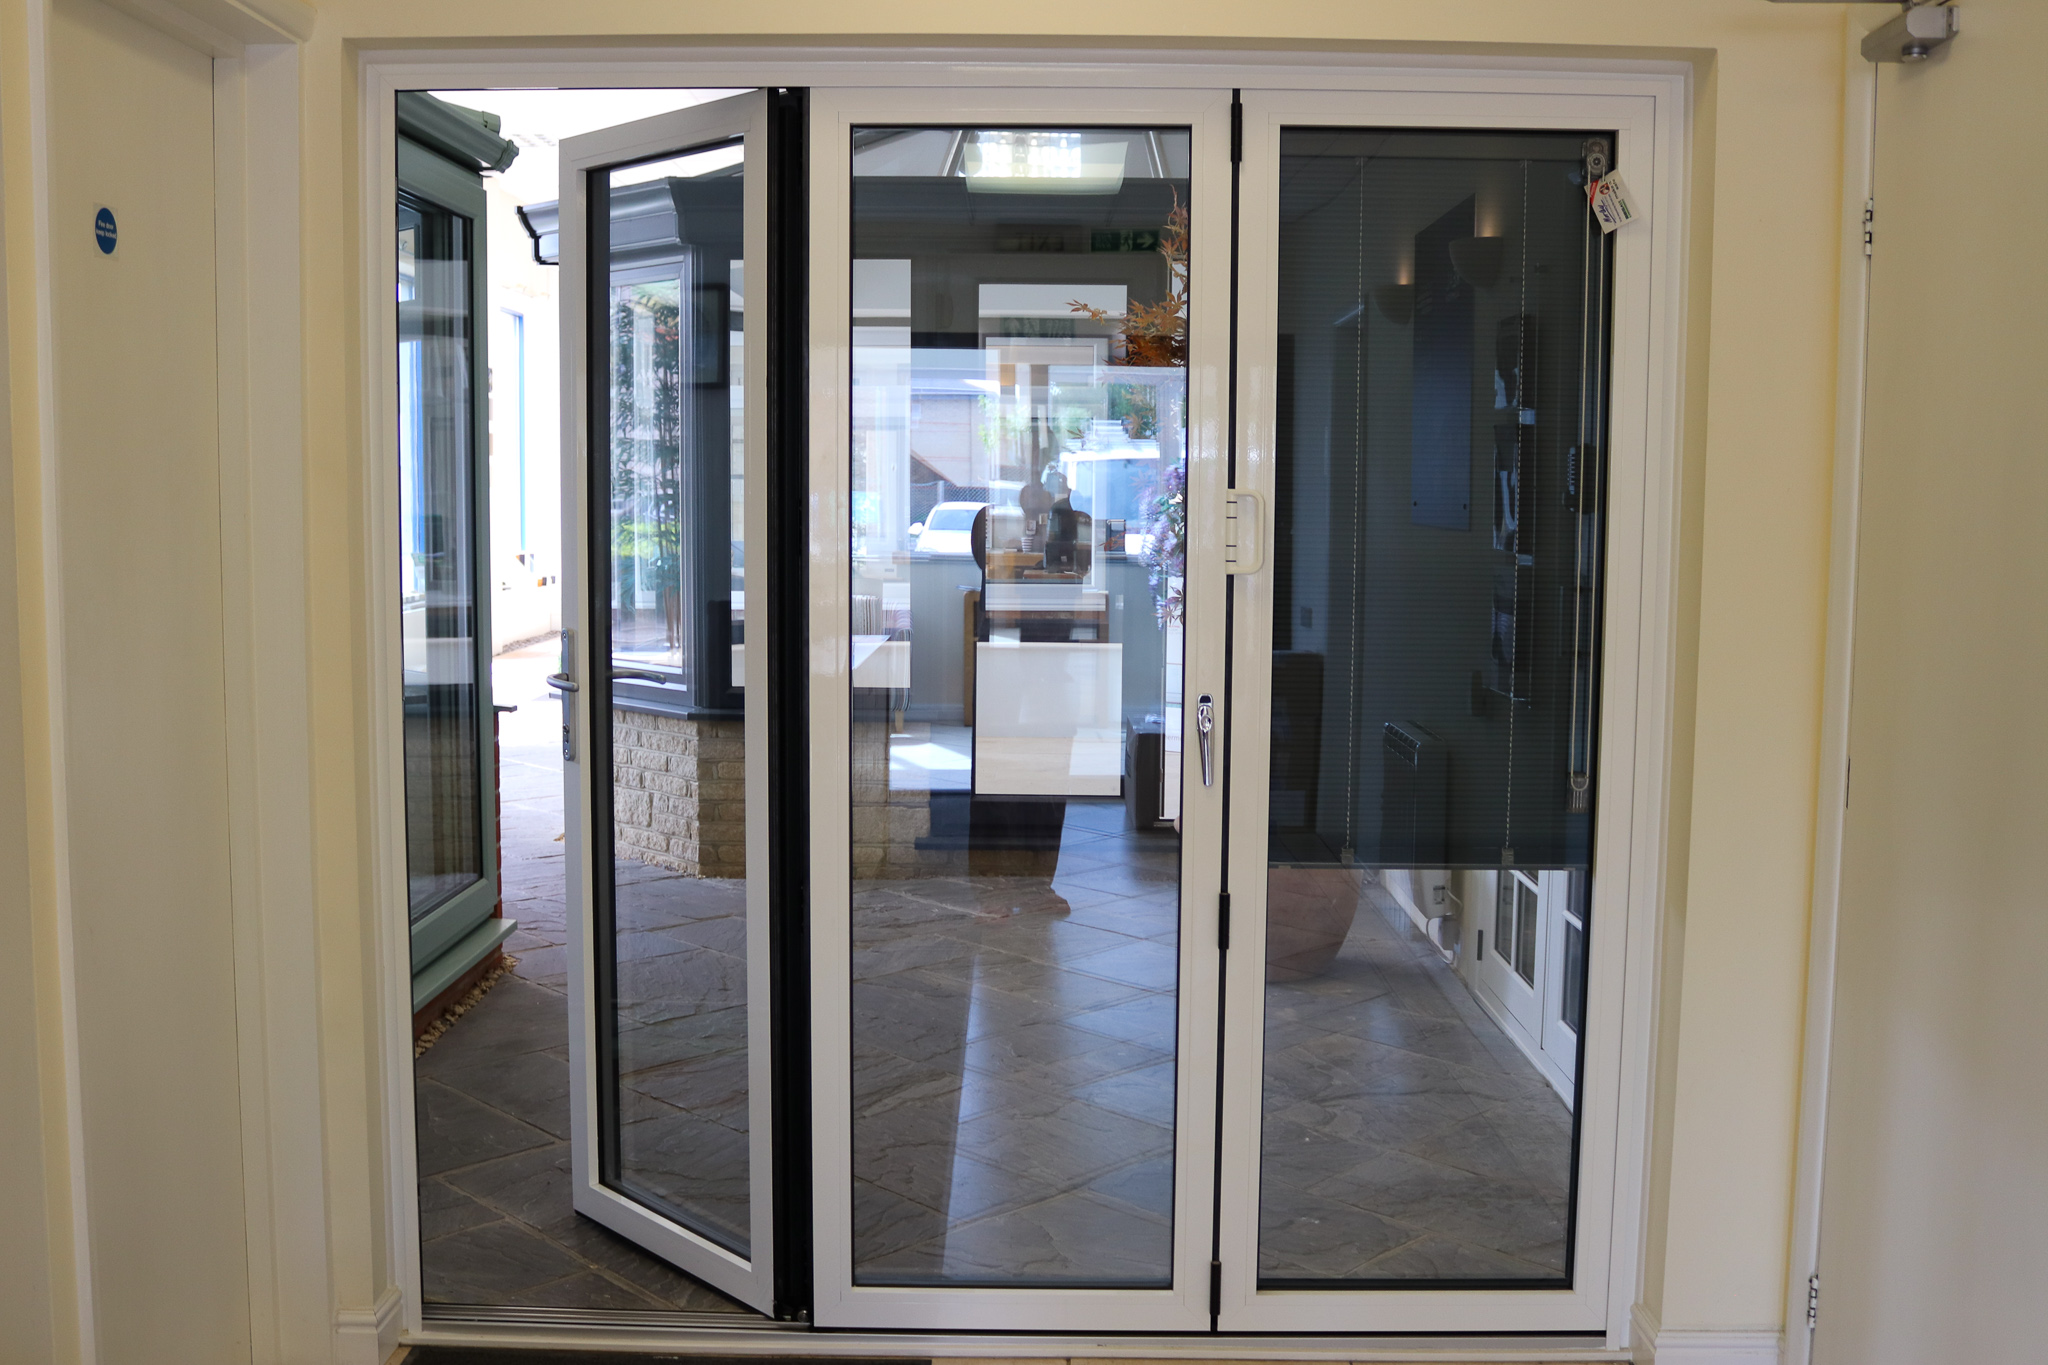 Photograph of new french door installation.